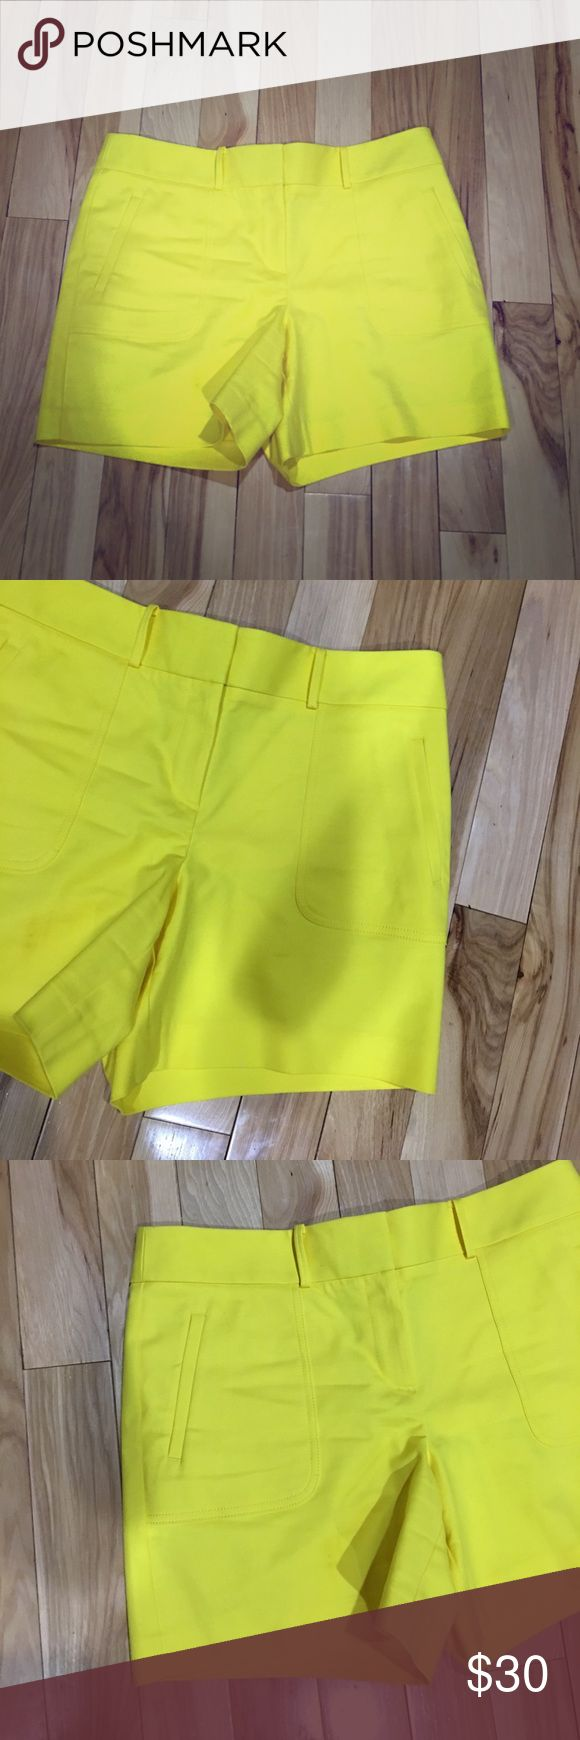 Ann taylor loft yellow shorts sz 10 nice Ann Taylor loft shorts size 10 in women's bright yellow color great for summer very comfortable and nice has a clasp and button closure in the front has some stretch to them non-smoking home fast delivery at an excellent price get them today Ann Taylor Shorts